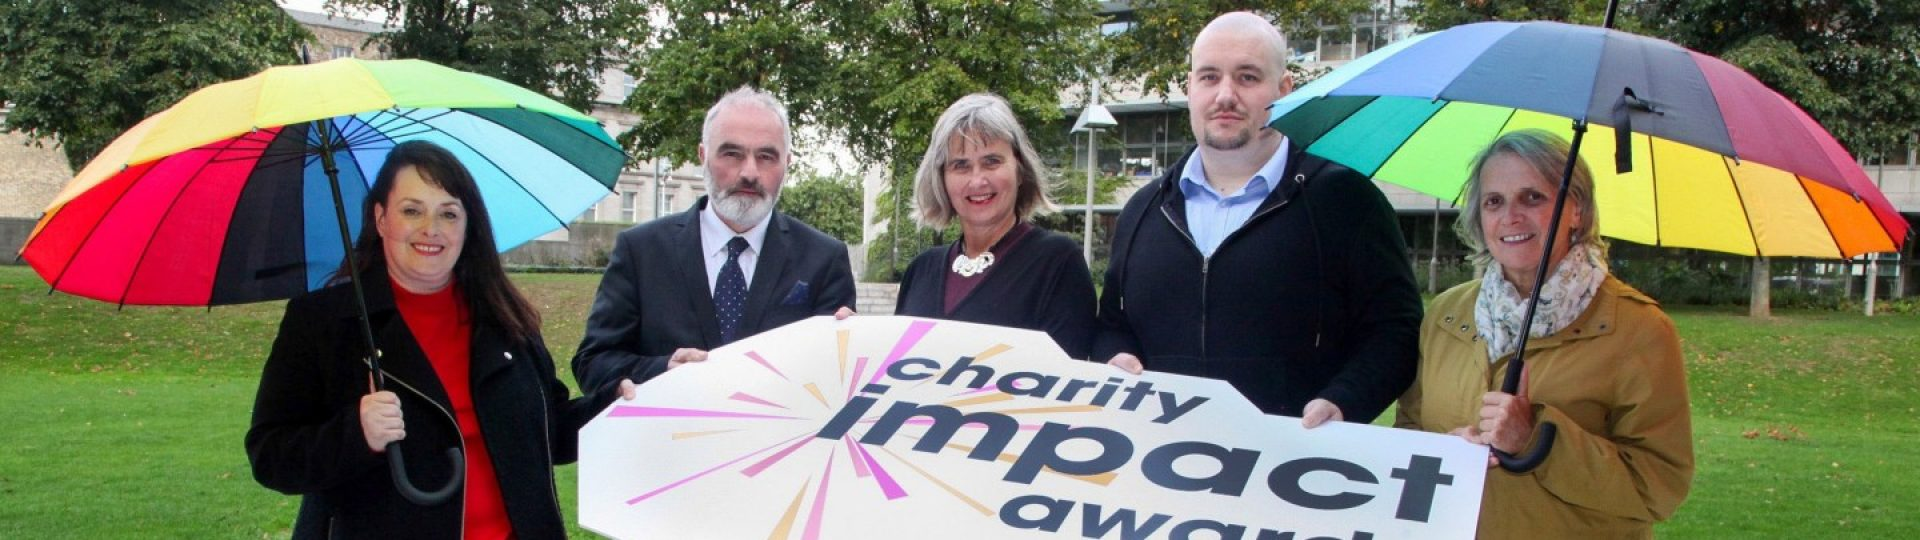 Charity Impact Awards Launch